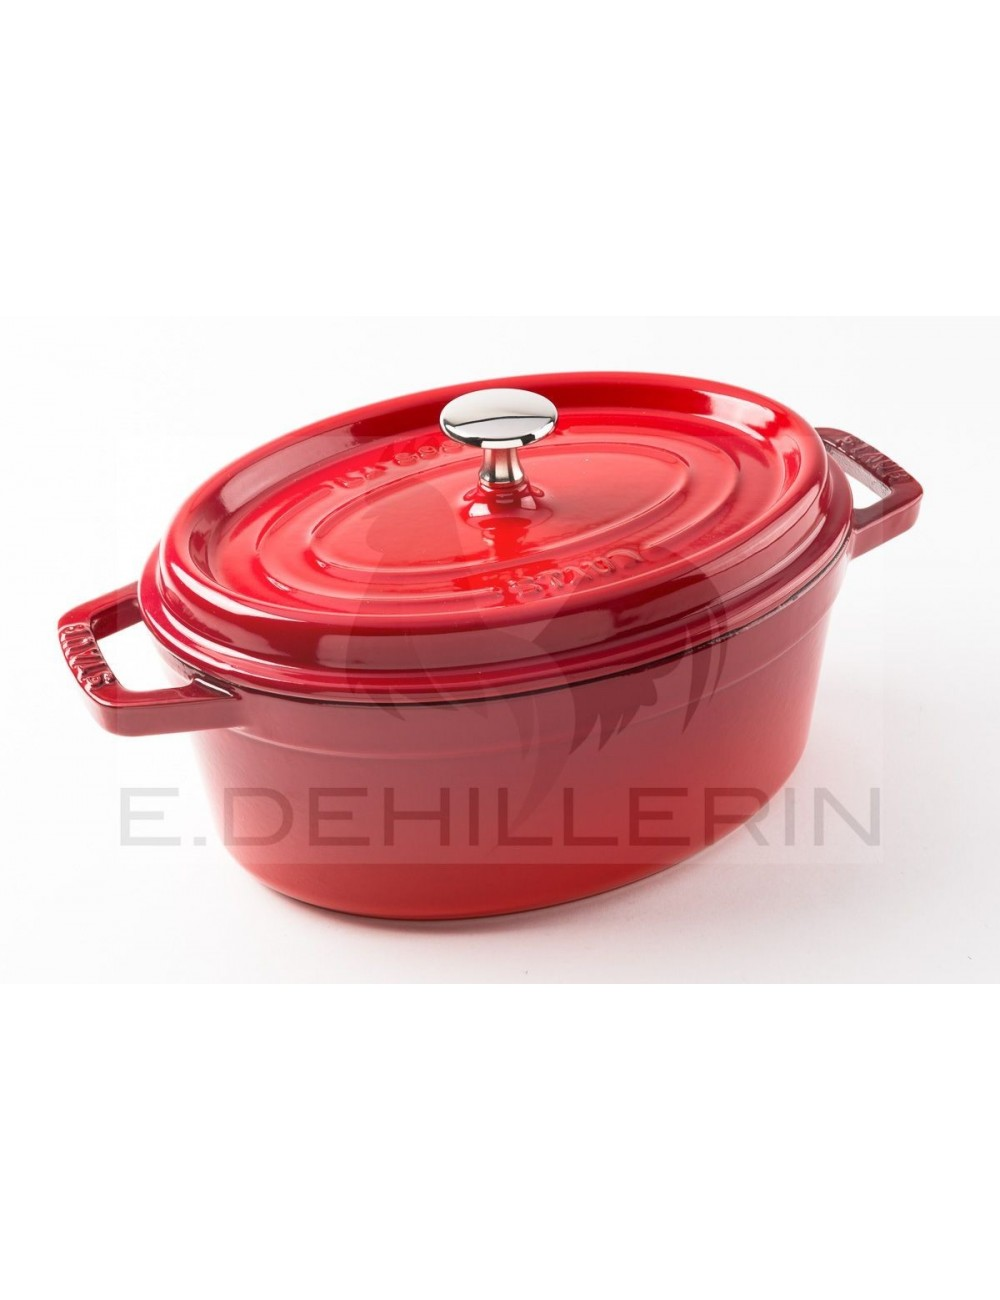 COCOTTE FONTE OVALE ROUGE - STAUB